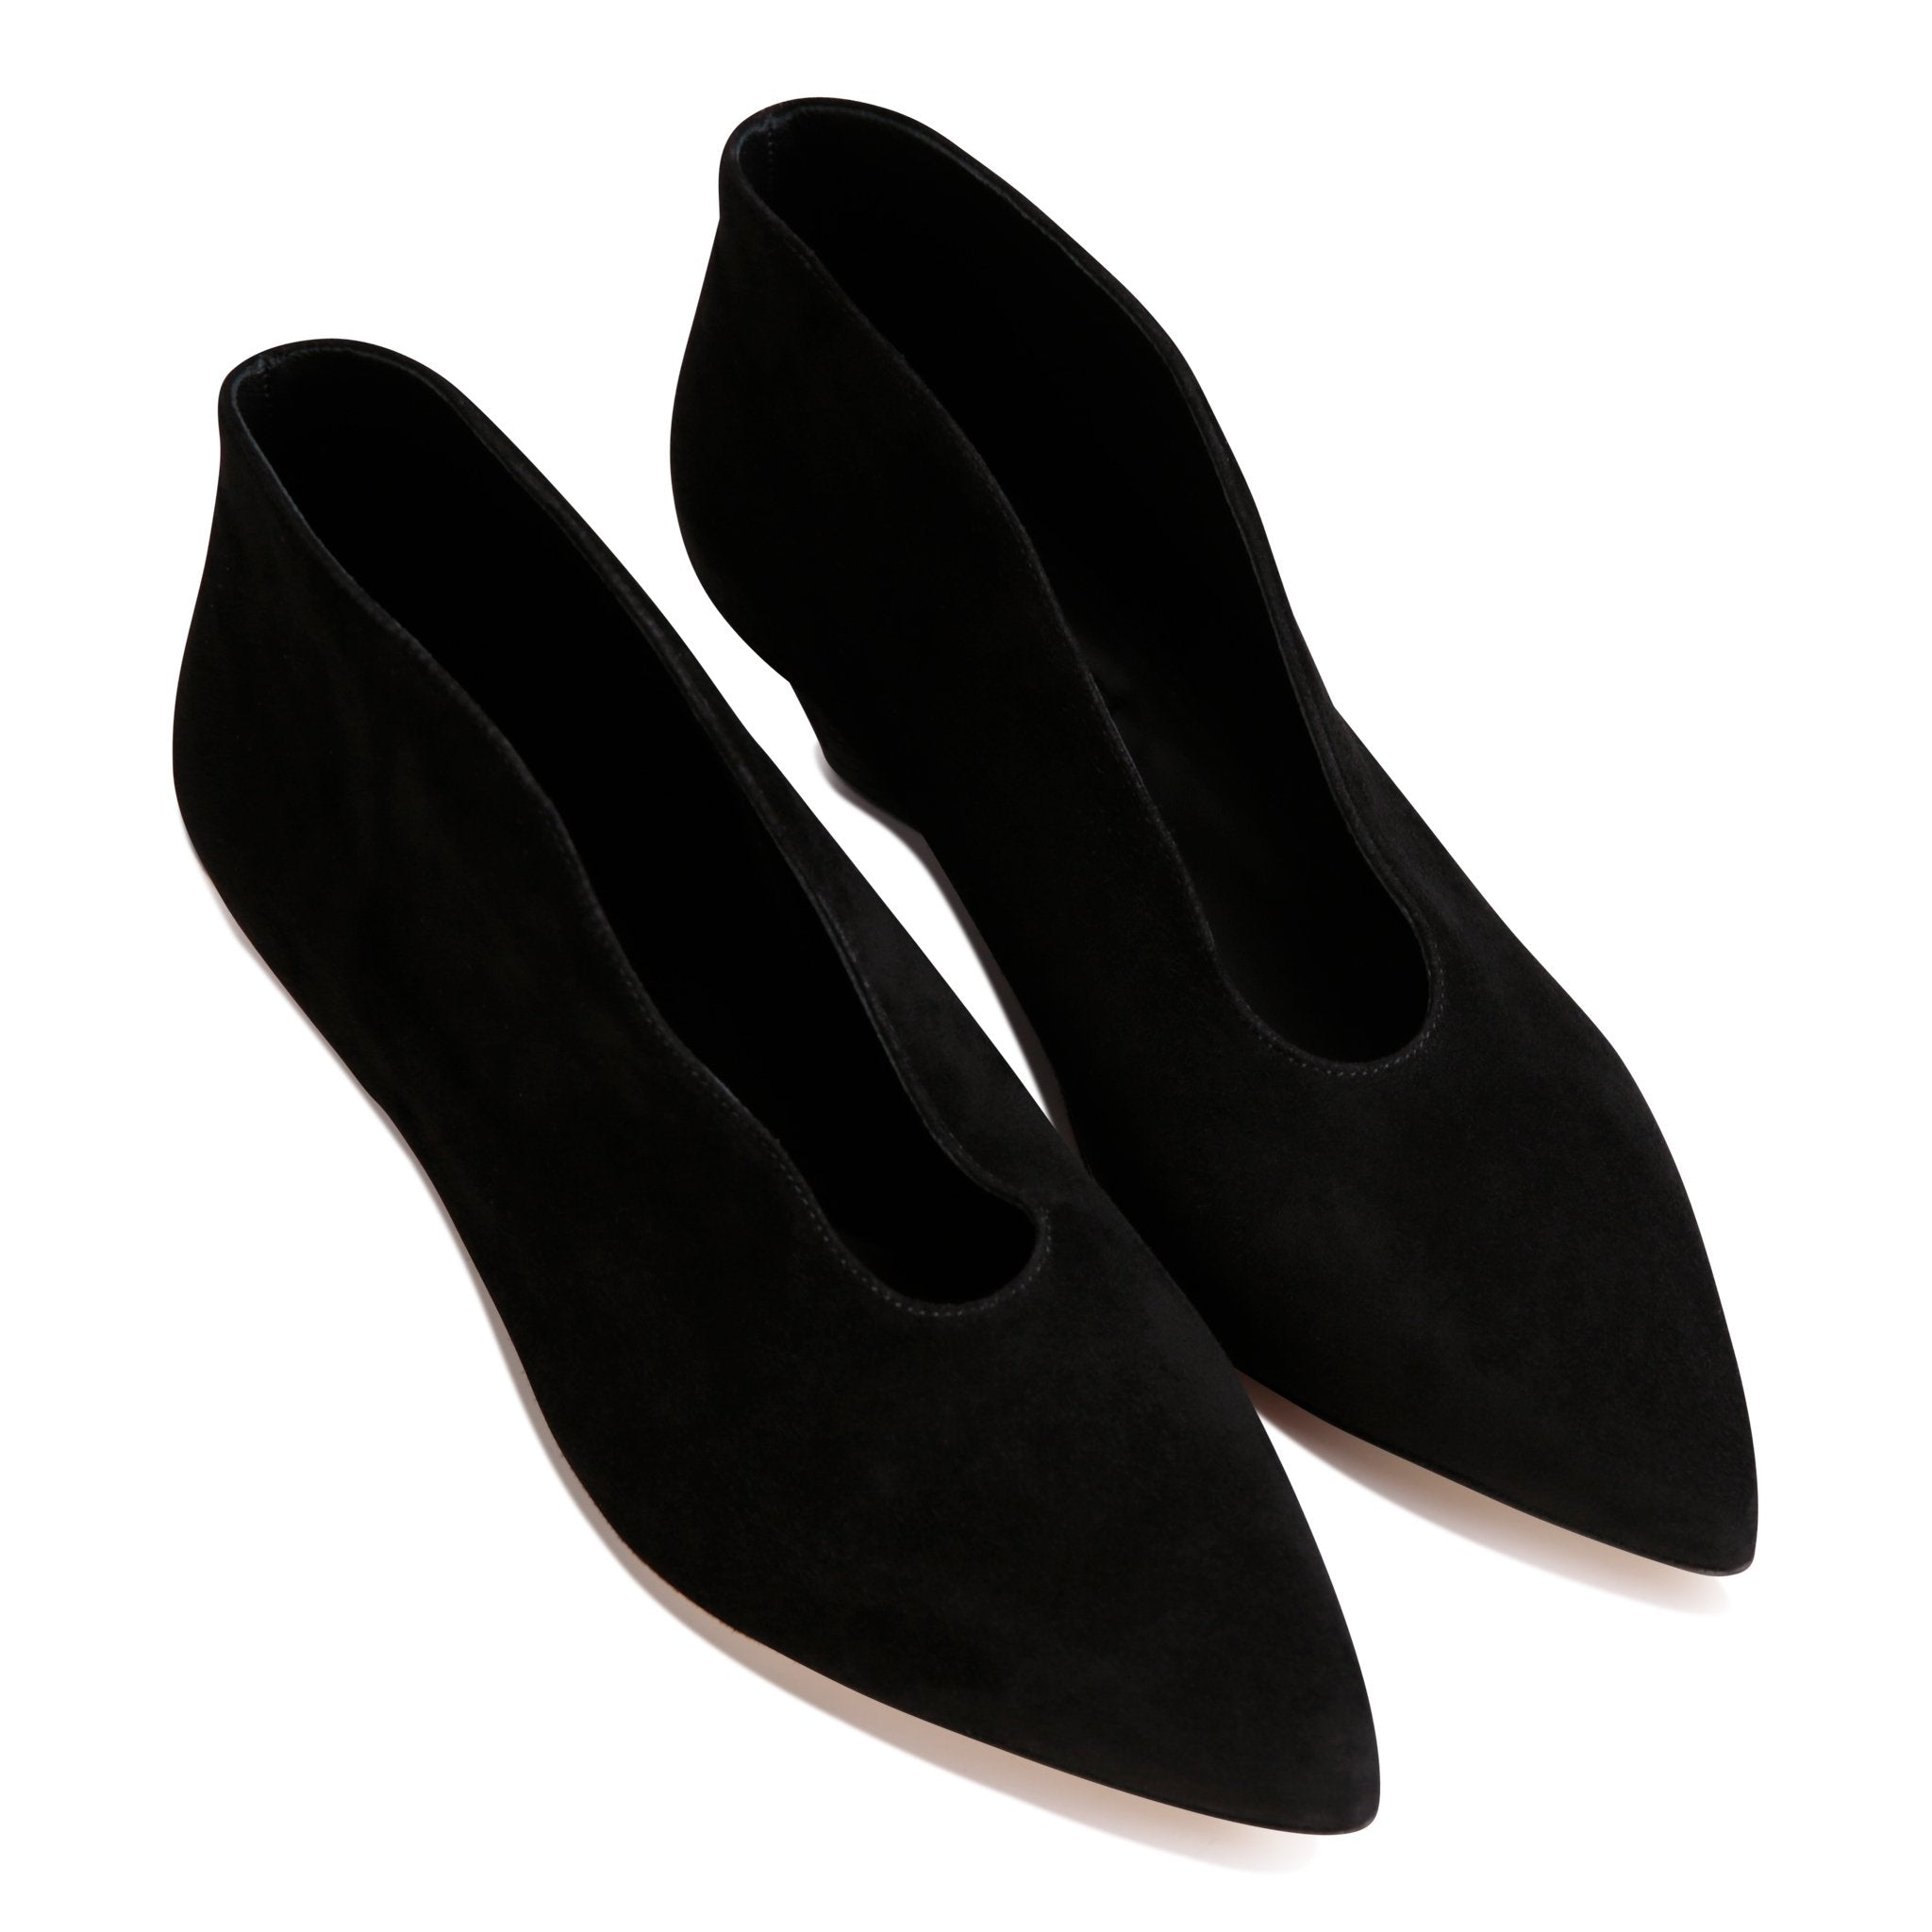 URBINO - Velukid + Varanus Nero, VIAJIYU - Women's Hand Made Sustainable Luxury Shoes. Made in Italy. Made to Order.